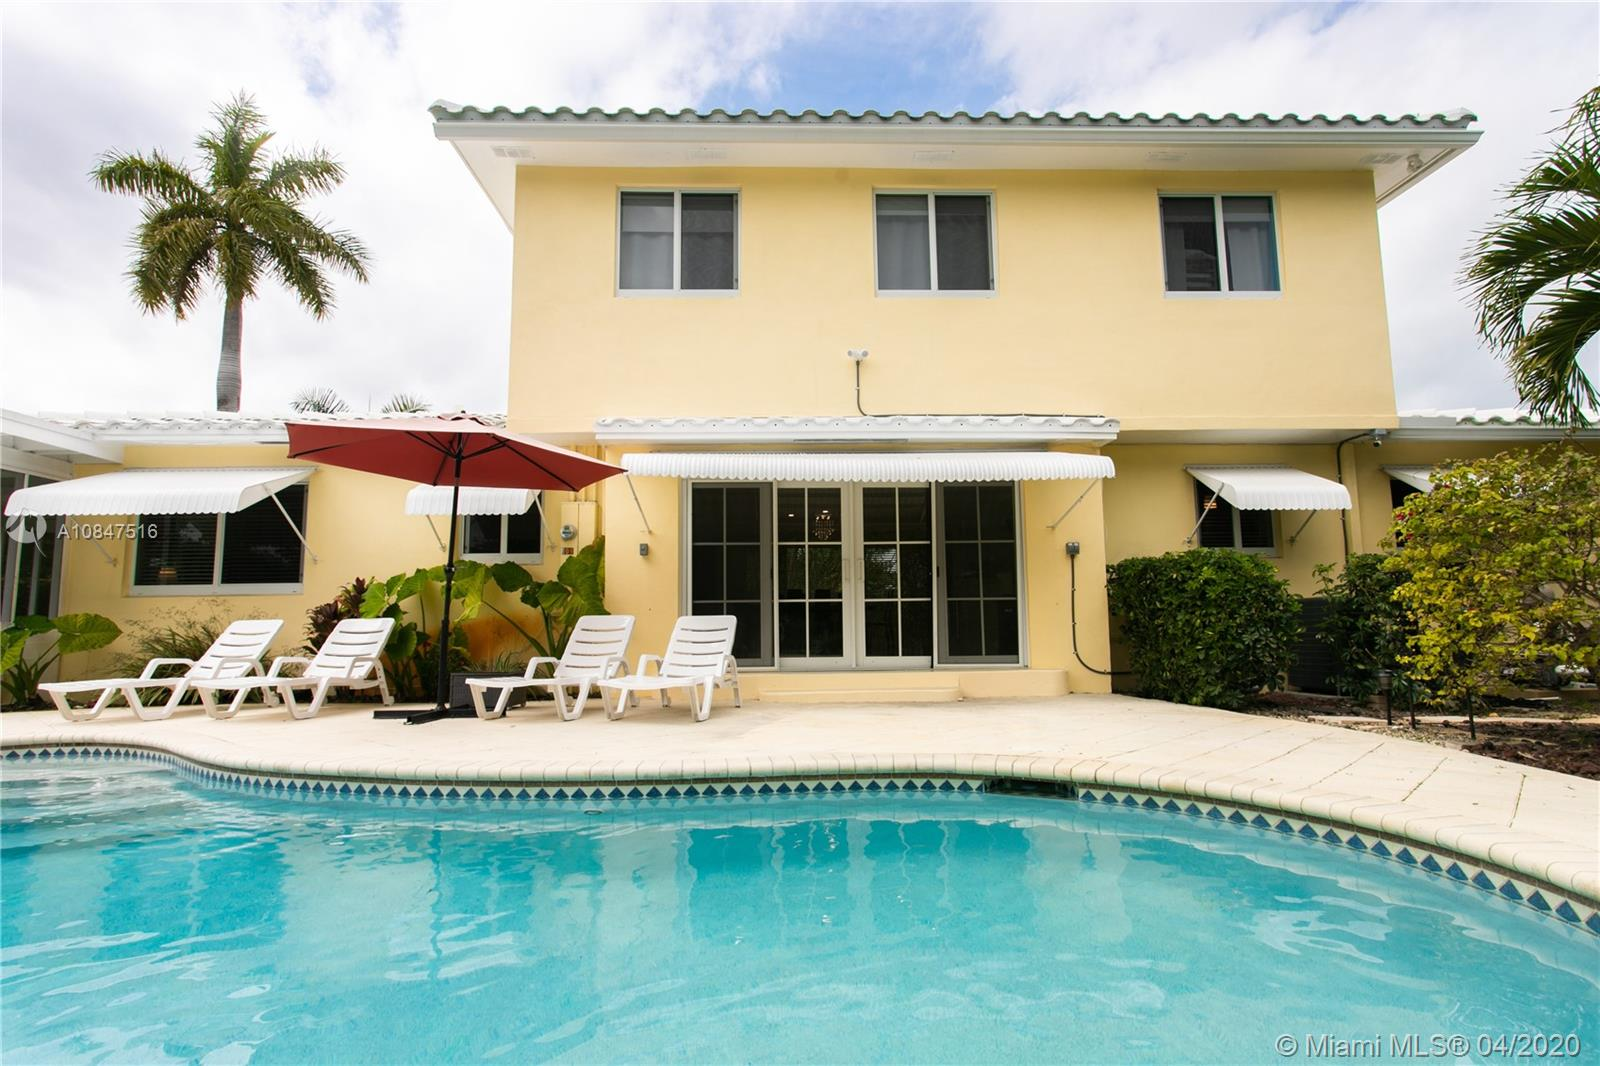 809 S 17th Ave  For Sale A10847516, FL